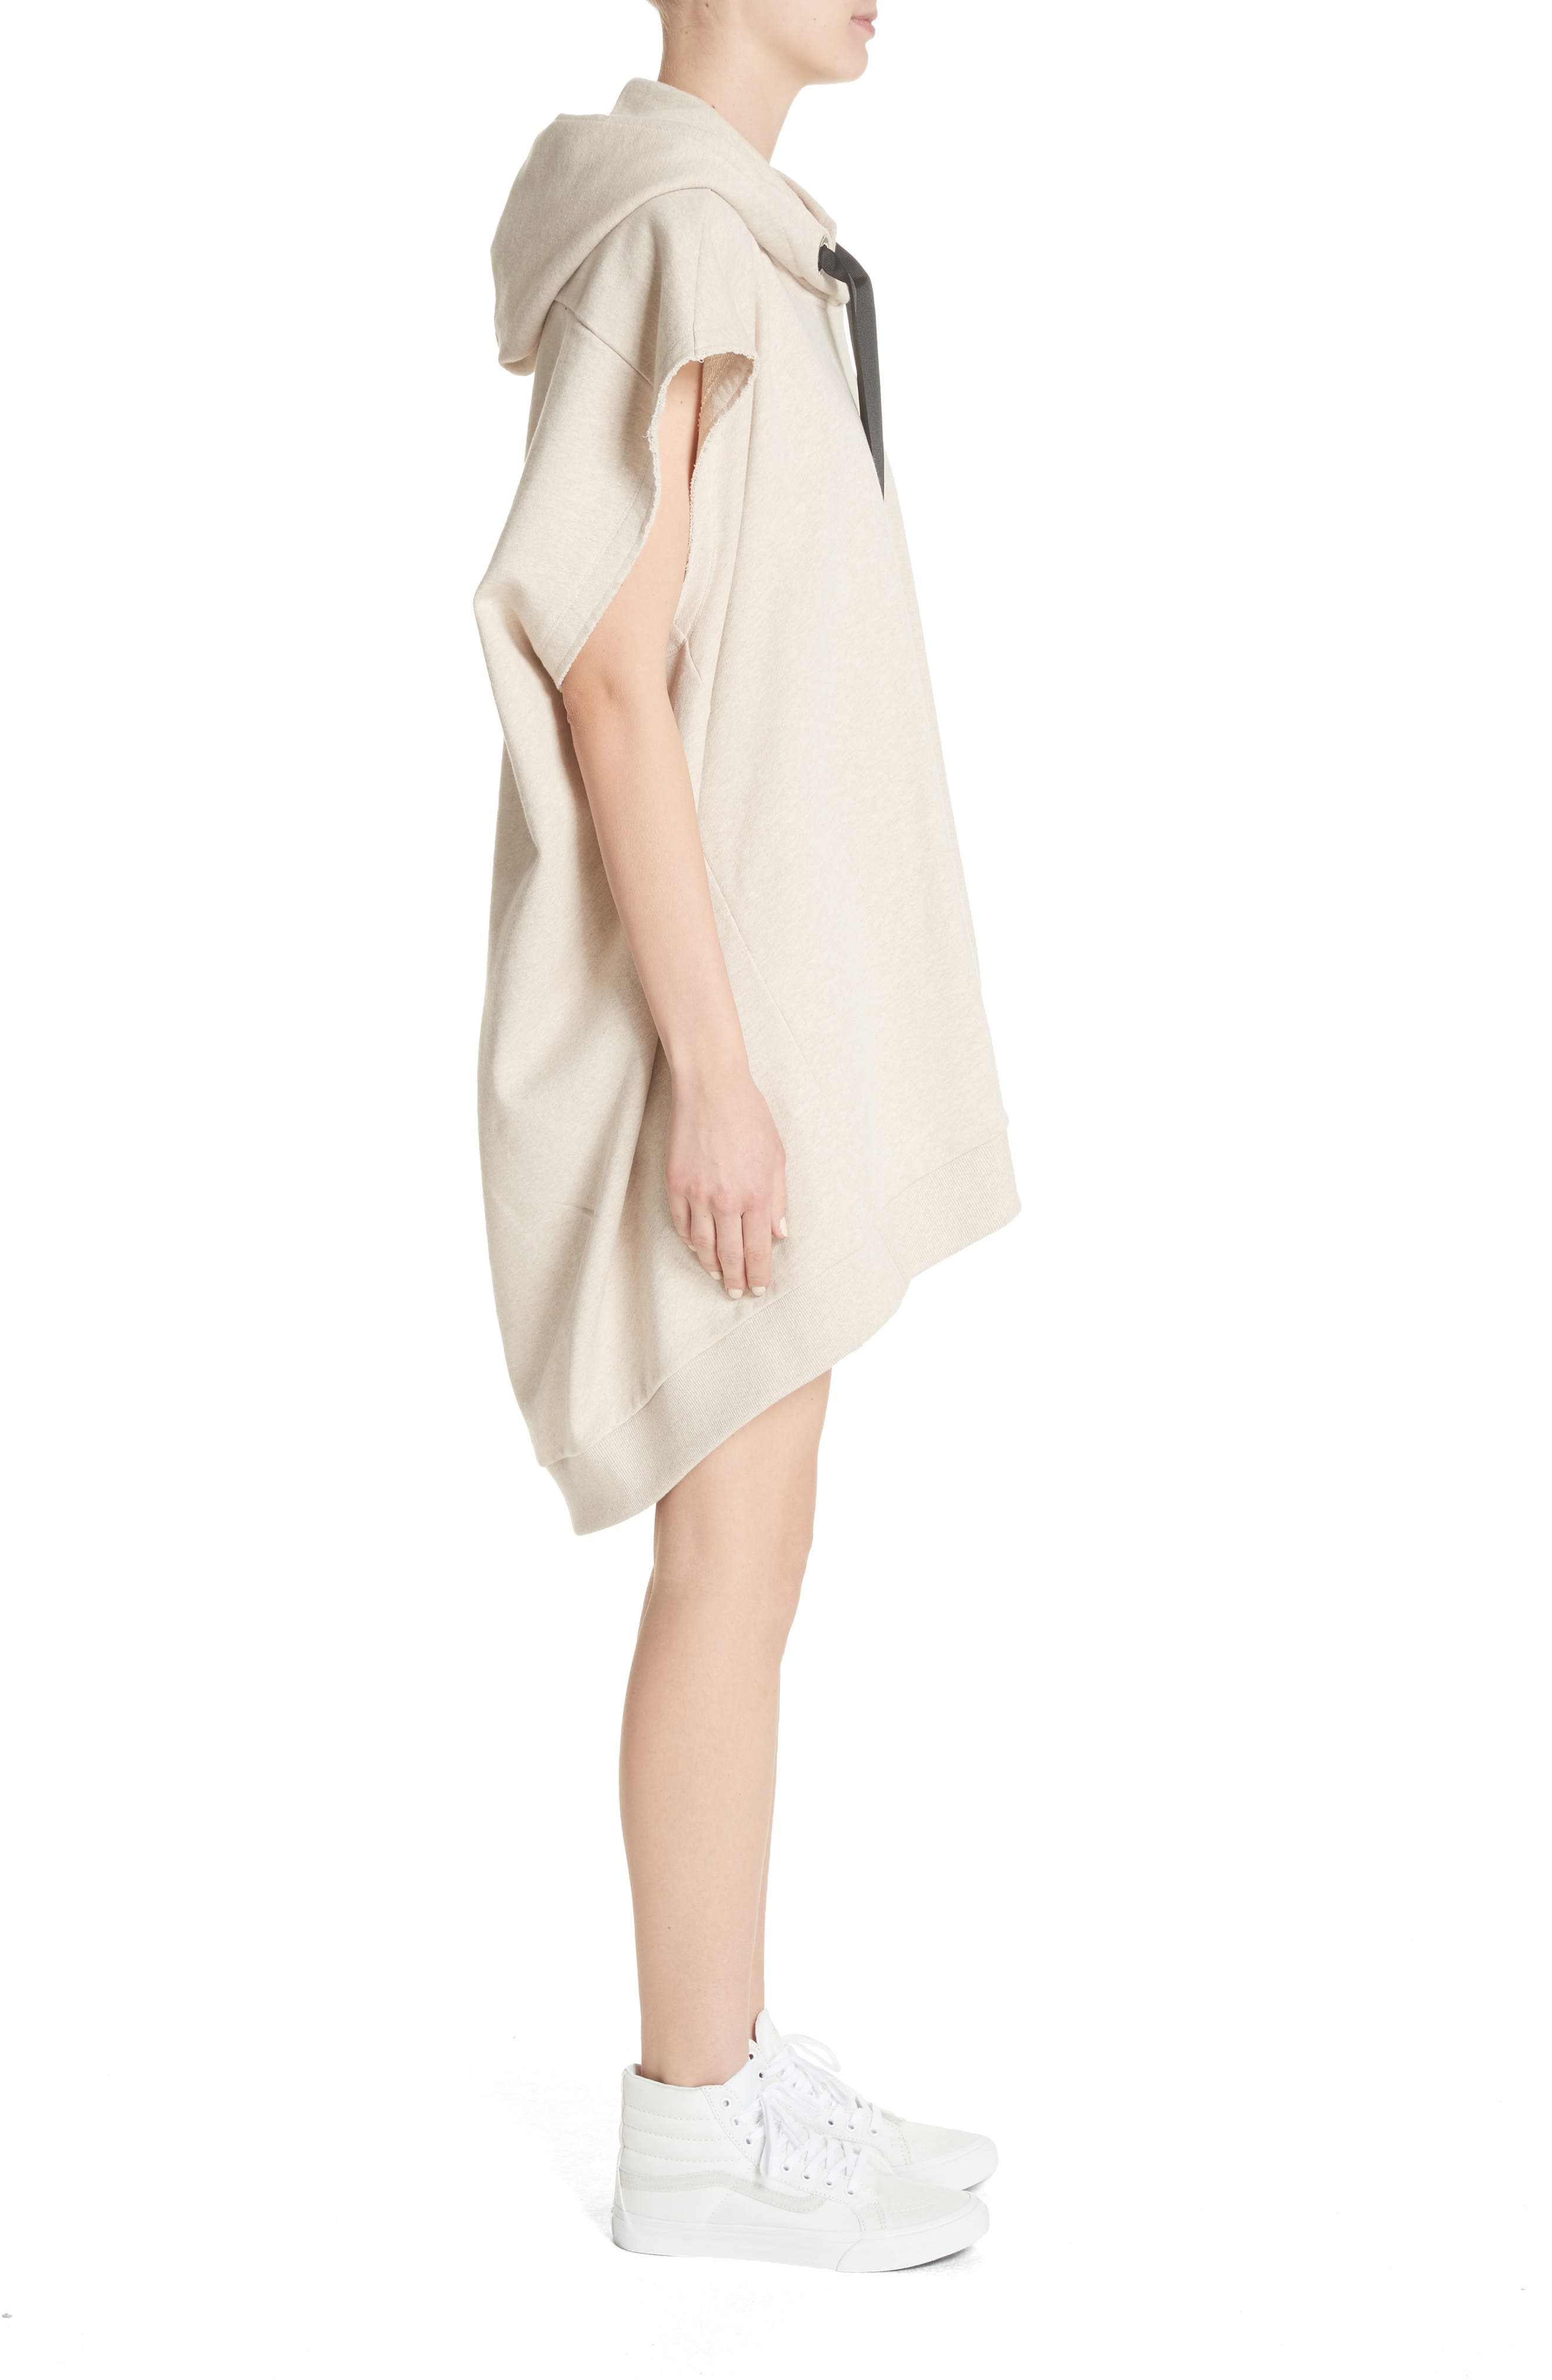 Marques'Almeida Asymmetrical Cap Sleeve Hoodie,                             Alternate thumbnail 3, color,                             Beige Melange